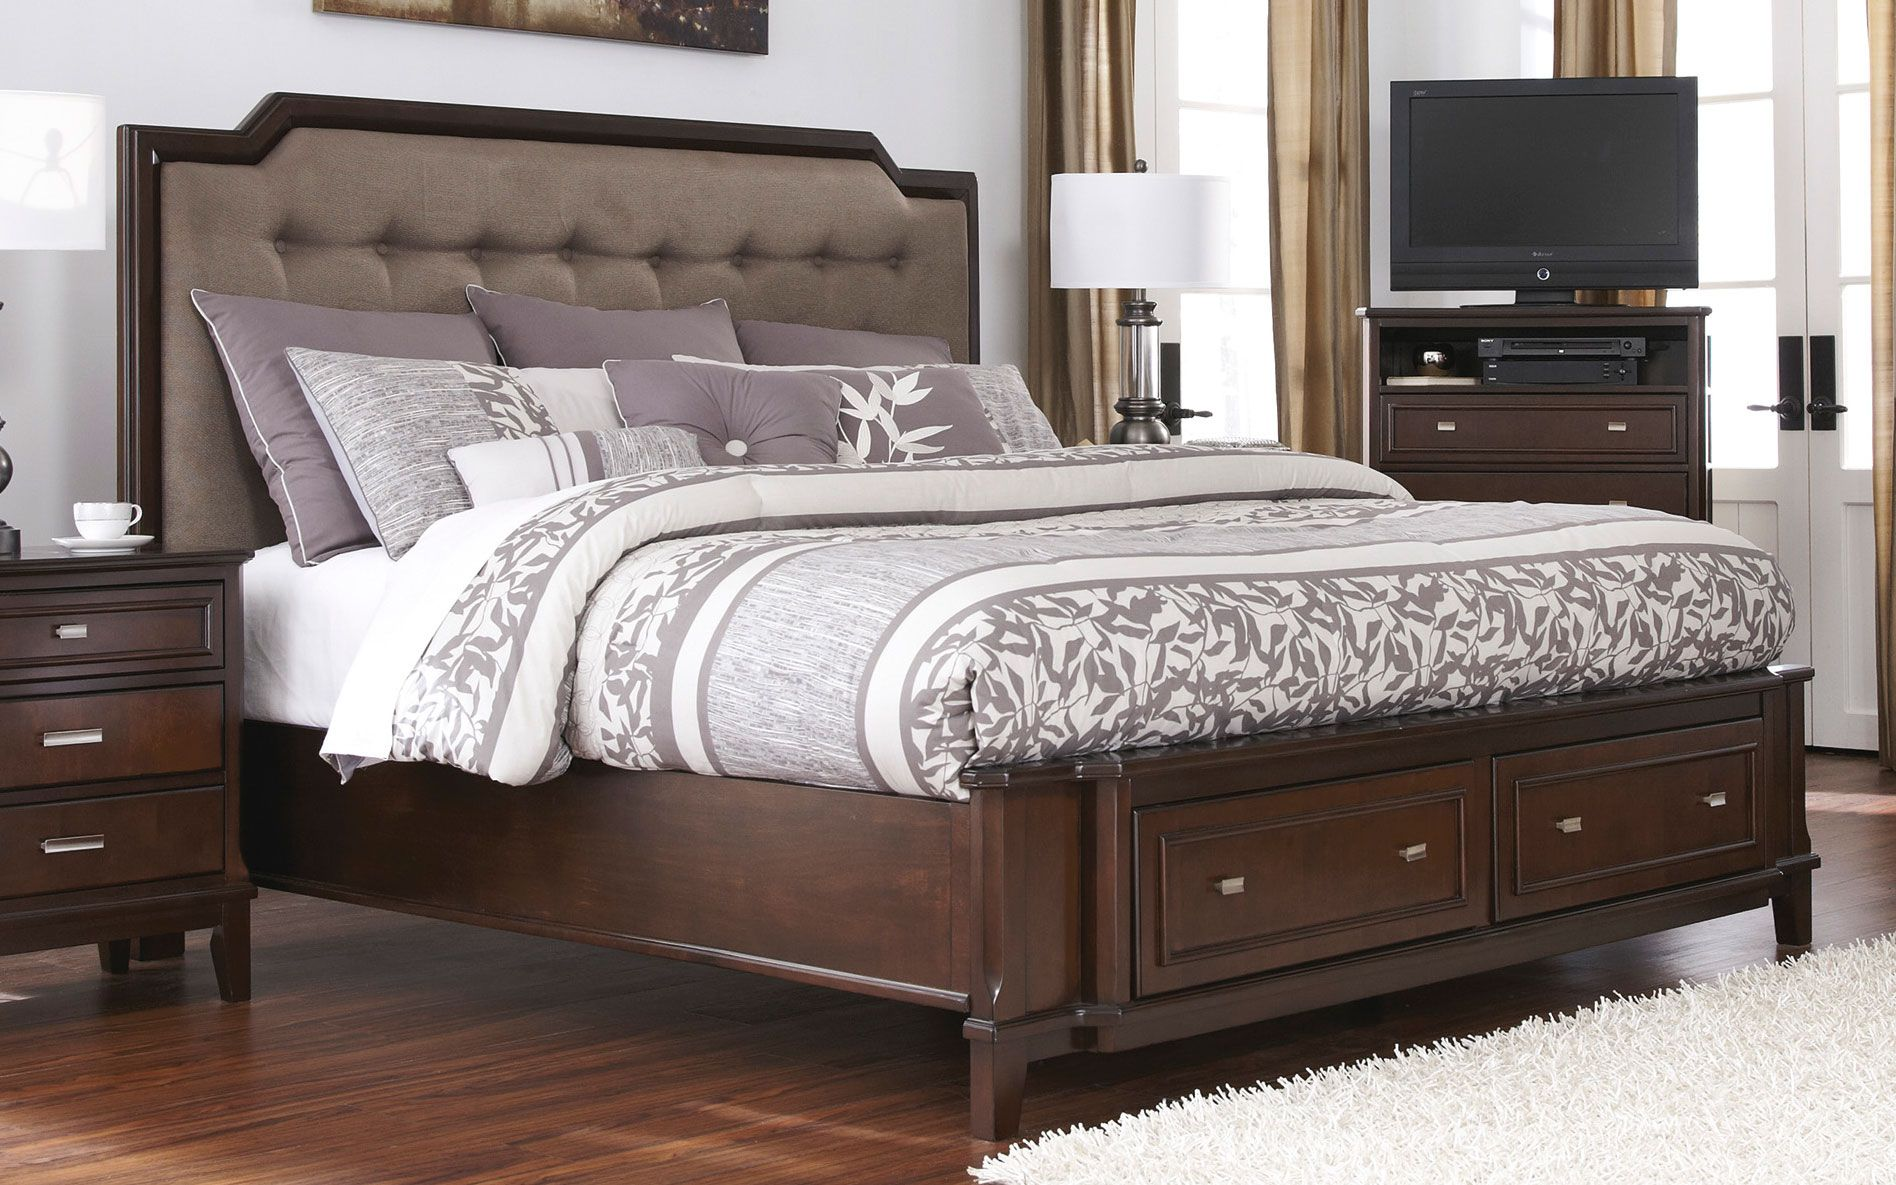 Bedroom Luxury King Upholstered Headboard For Bedroom Decoration